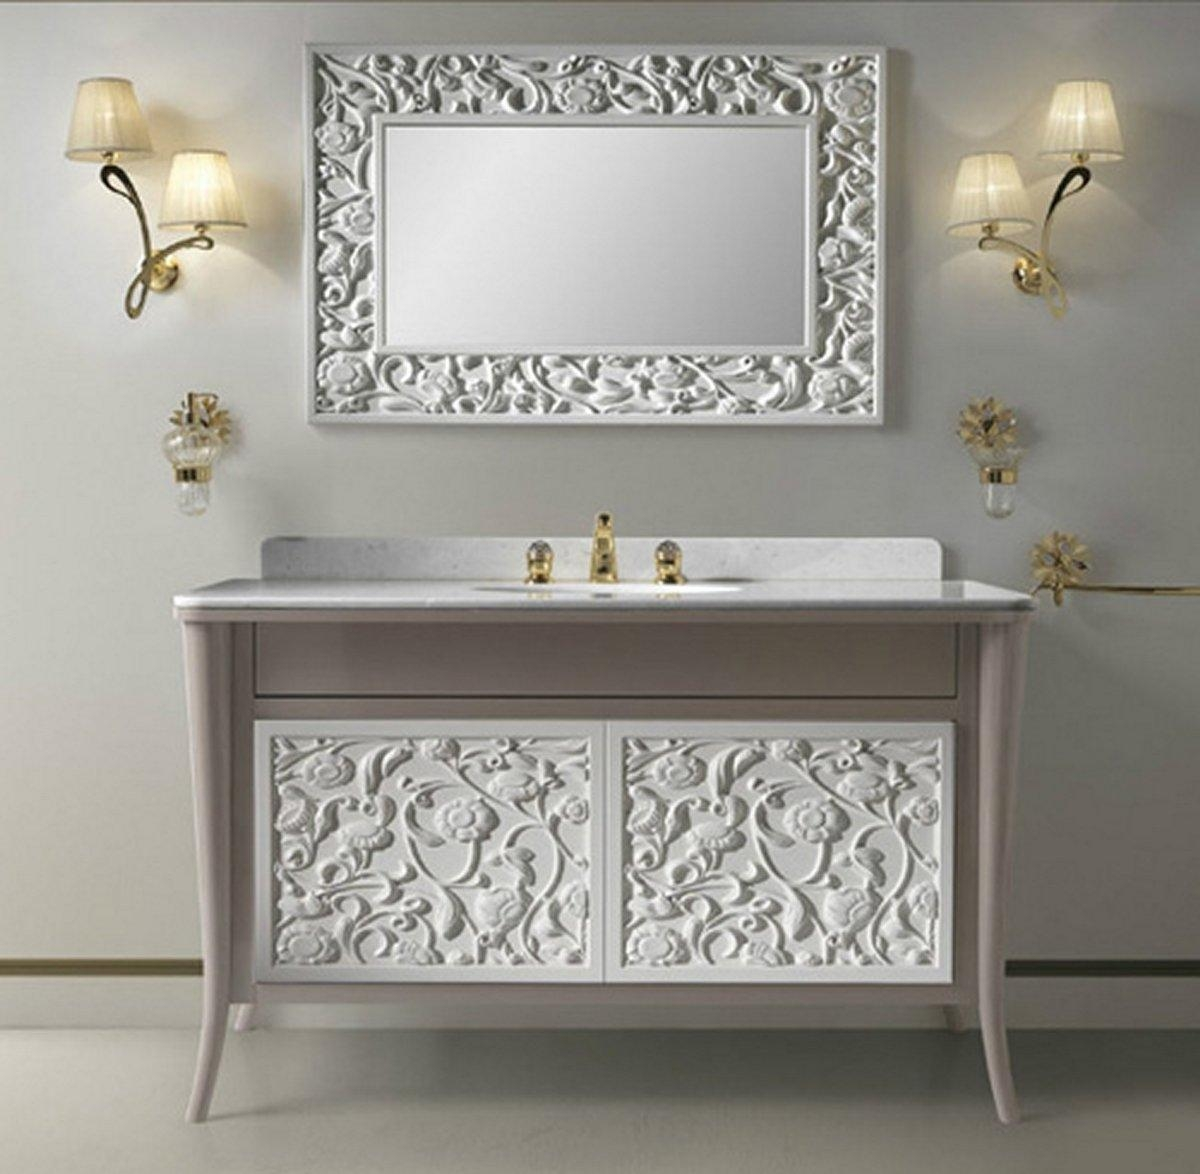 Vintage Bathroom Mirrors – Home Design Ideas And Pictures Pertaining To Vintage Style Mirrors (Image 18 of 20)